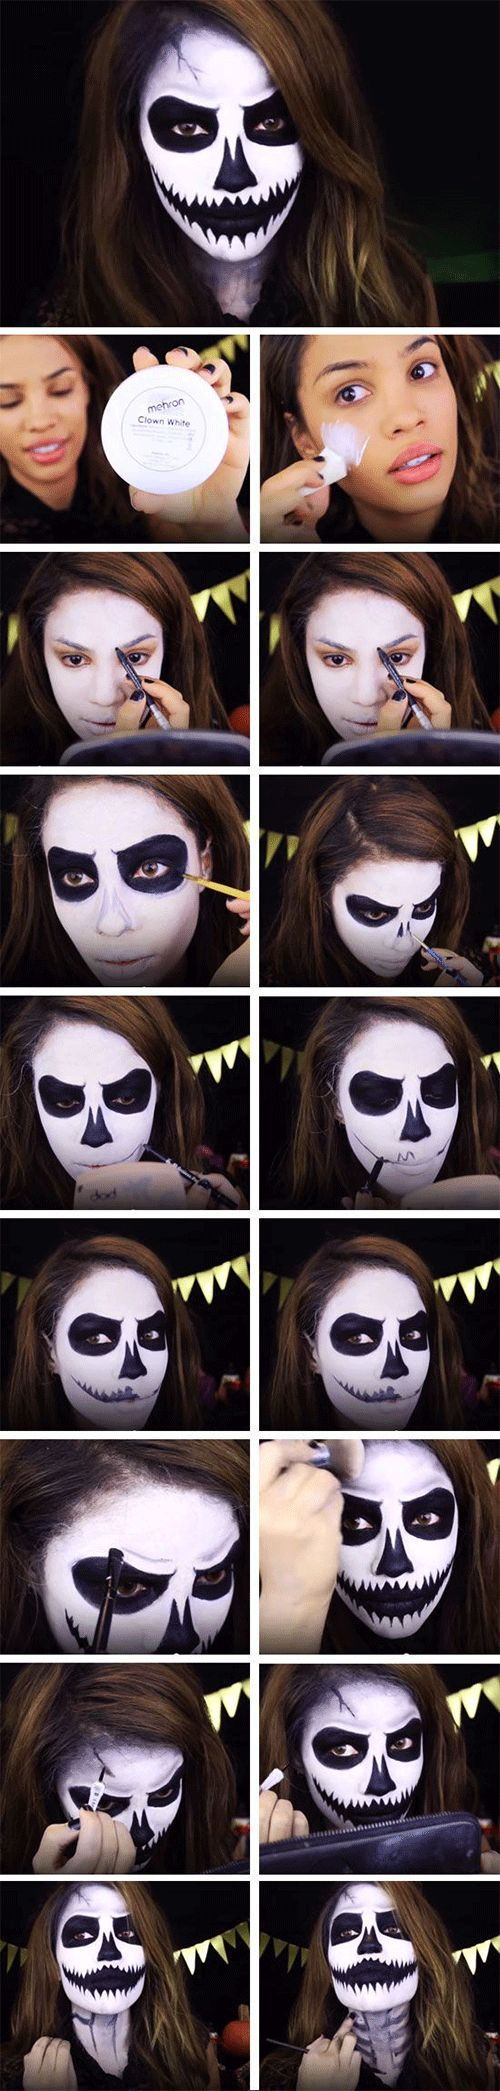 25-step-by-step-halloween-makeup-tutorials-for-beginners-2016-11